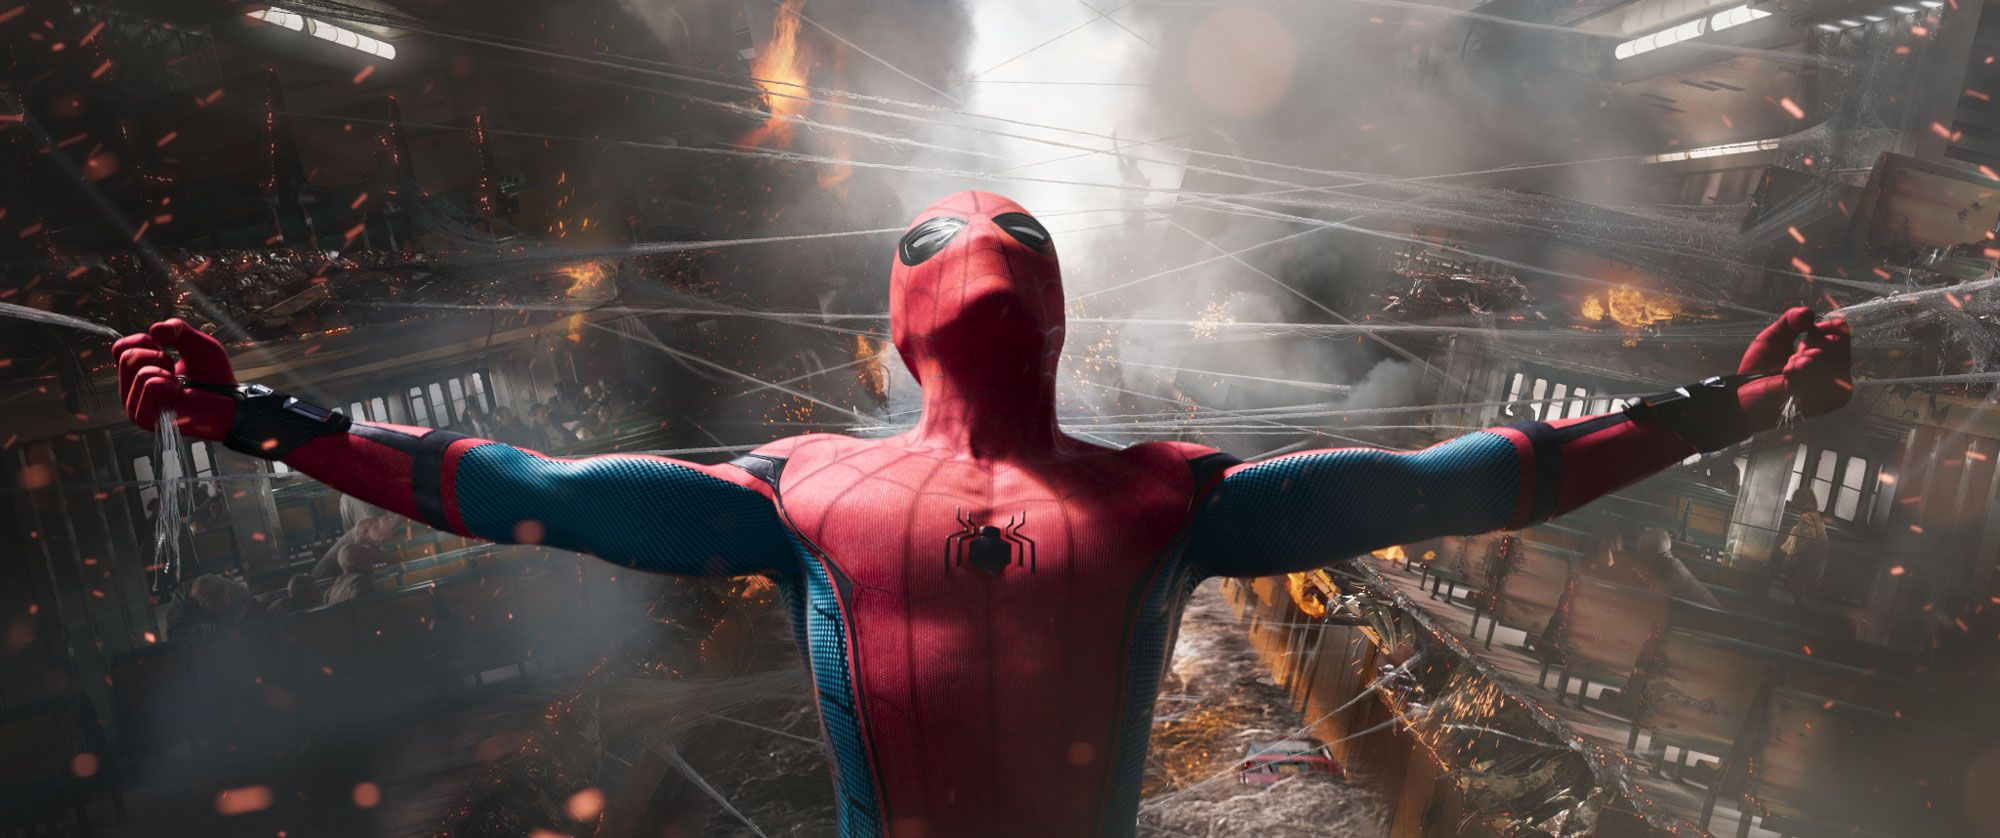 spider-man: far from home actor might have confirmed another mcu cameo